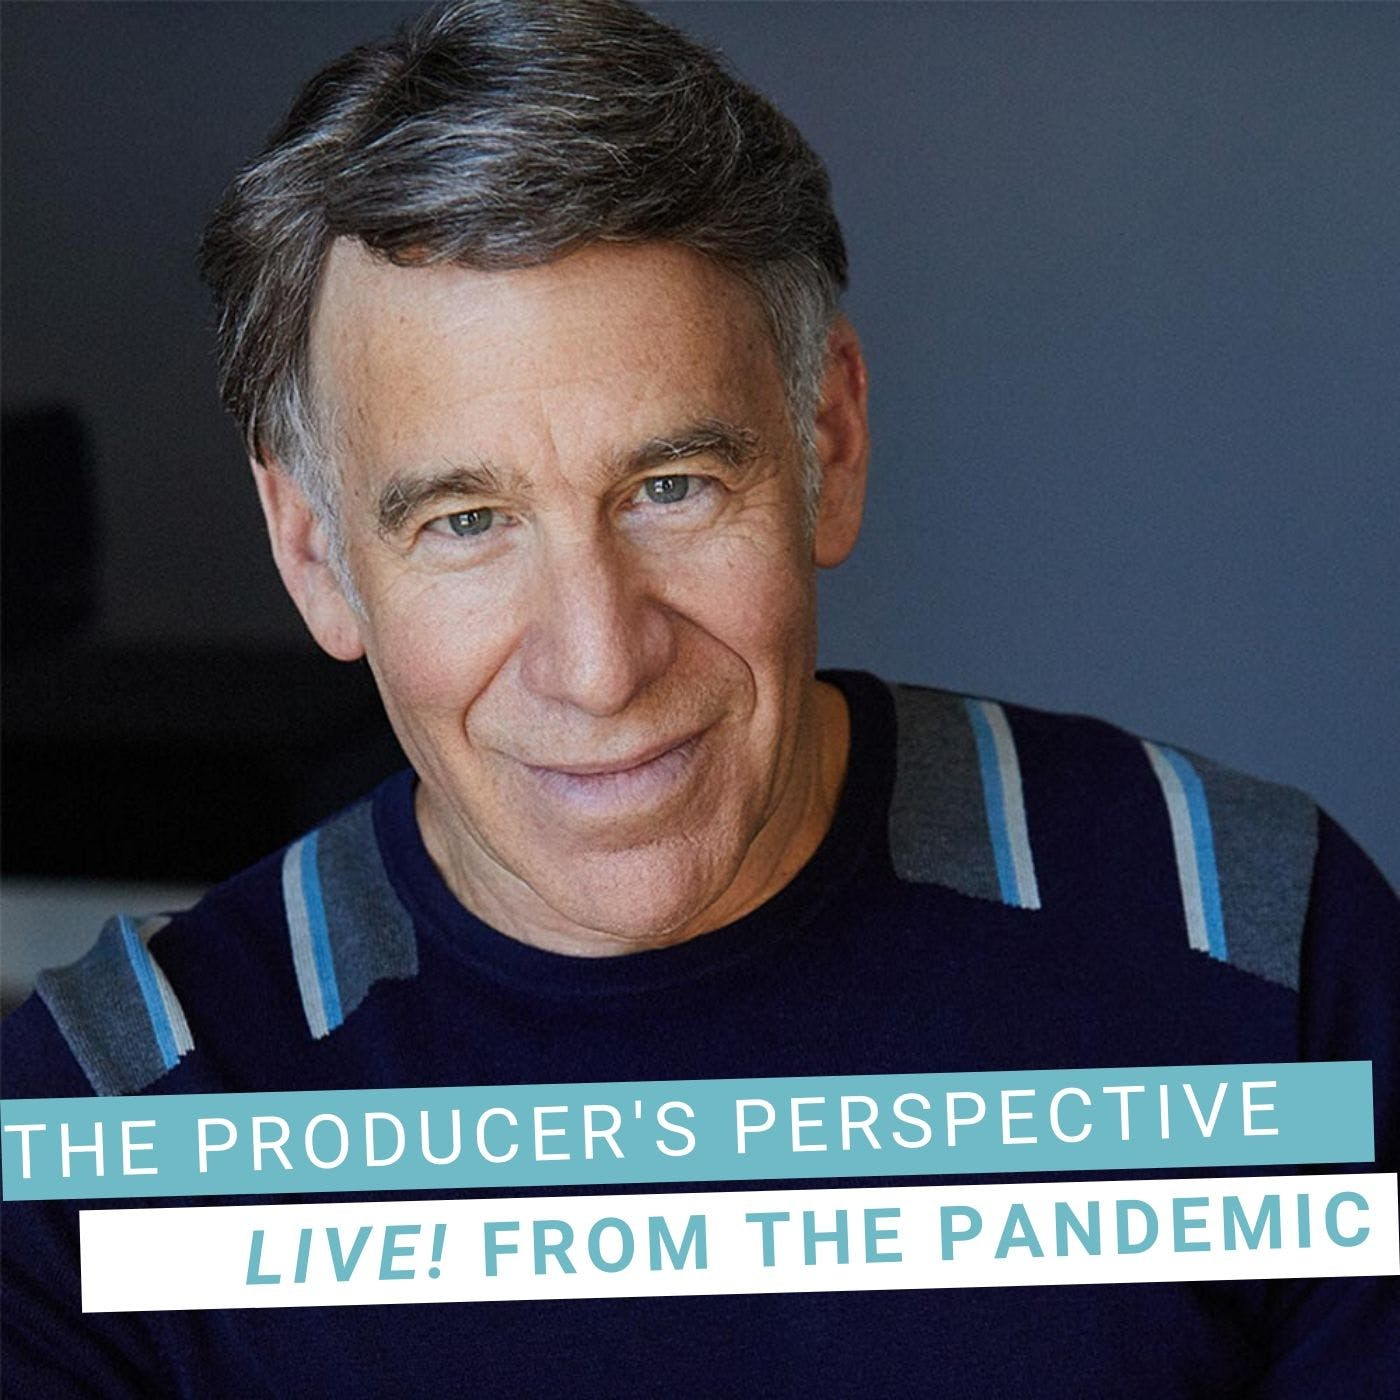 Live From The Pandemic #2: STEPHEN SCHWARTZ